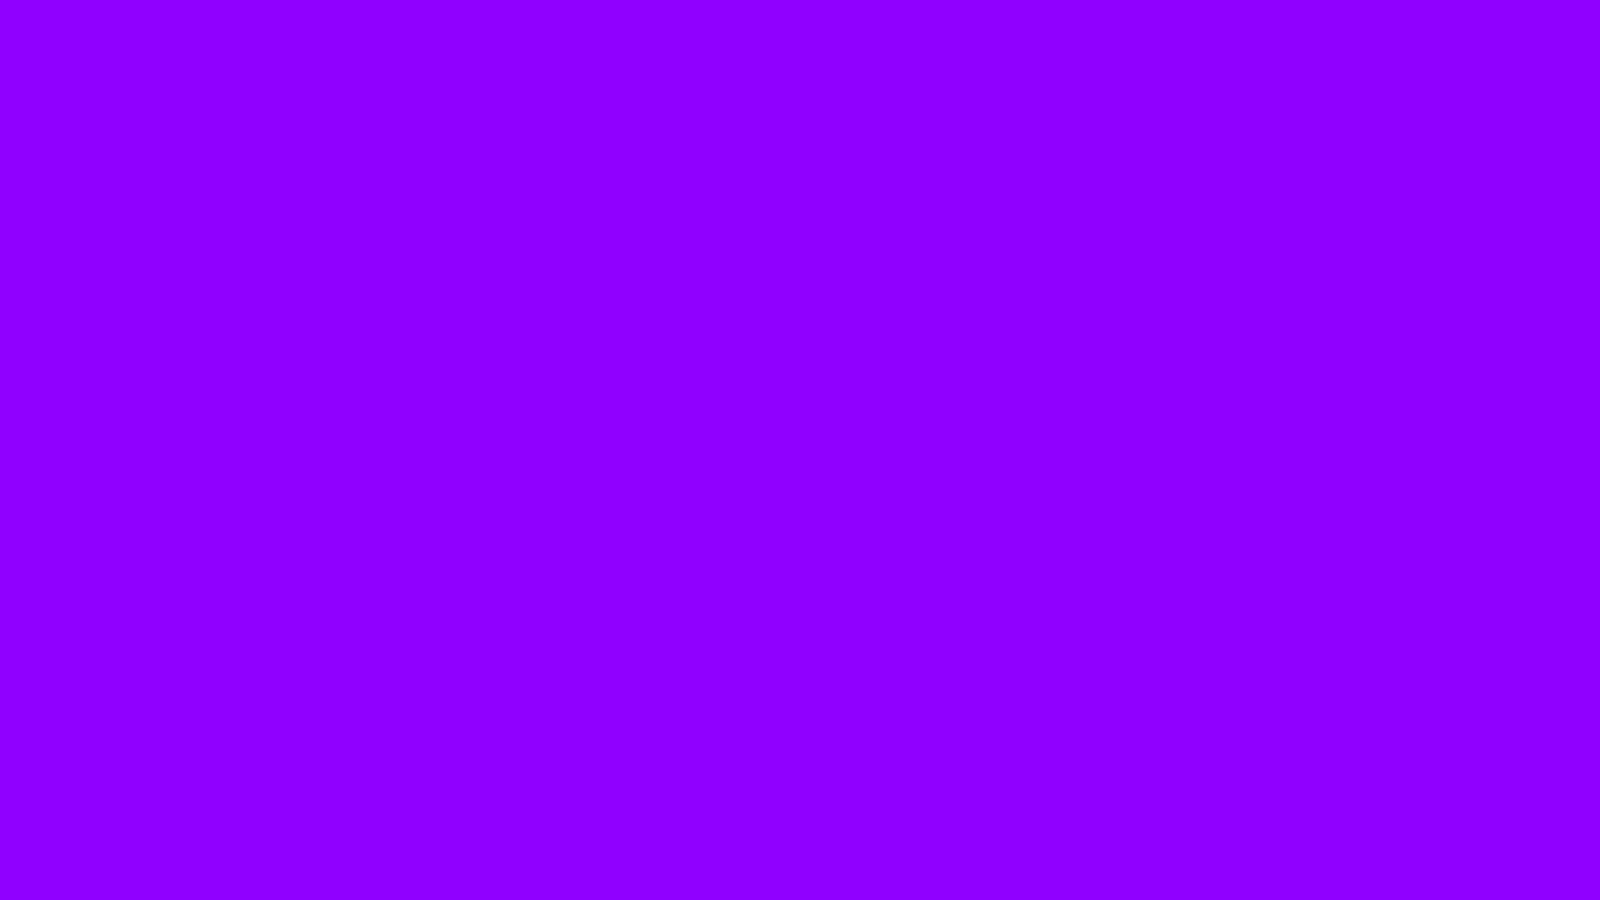 1600x900 Electric Violet Solid Color Background 1600x900